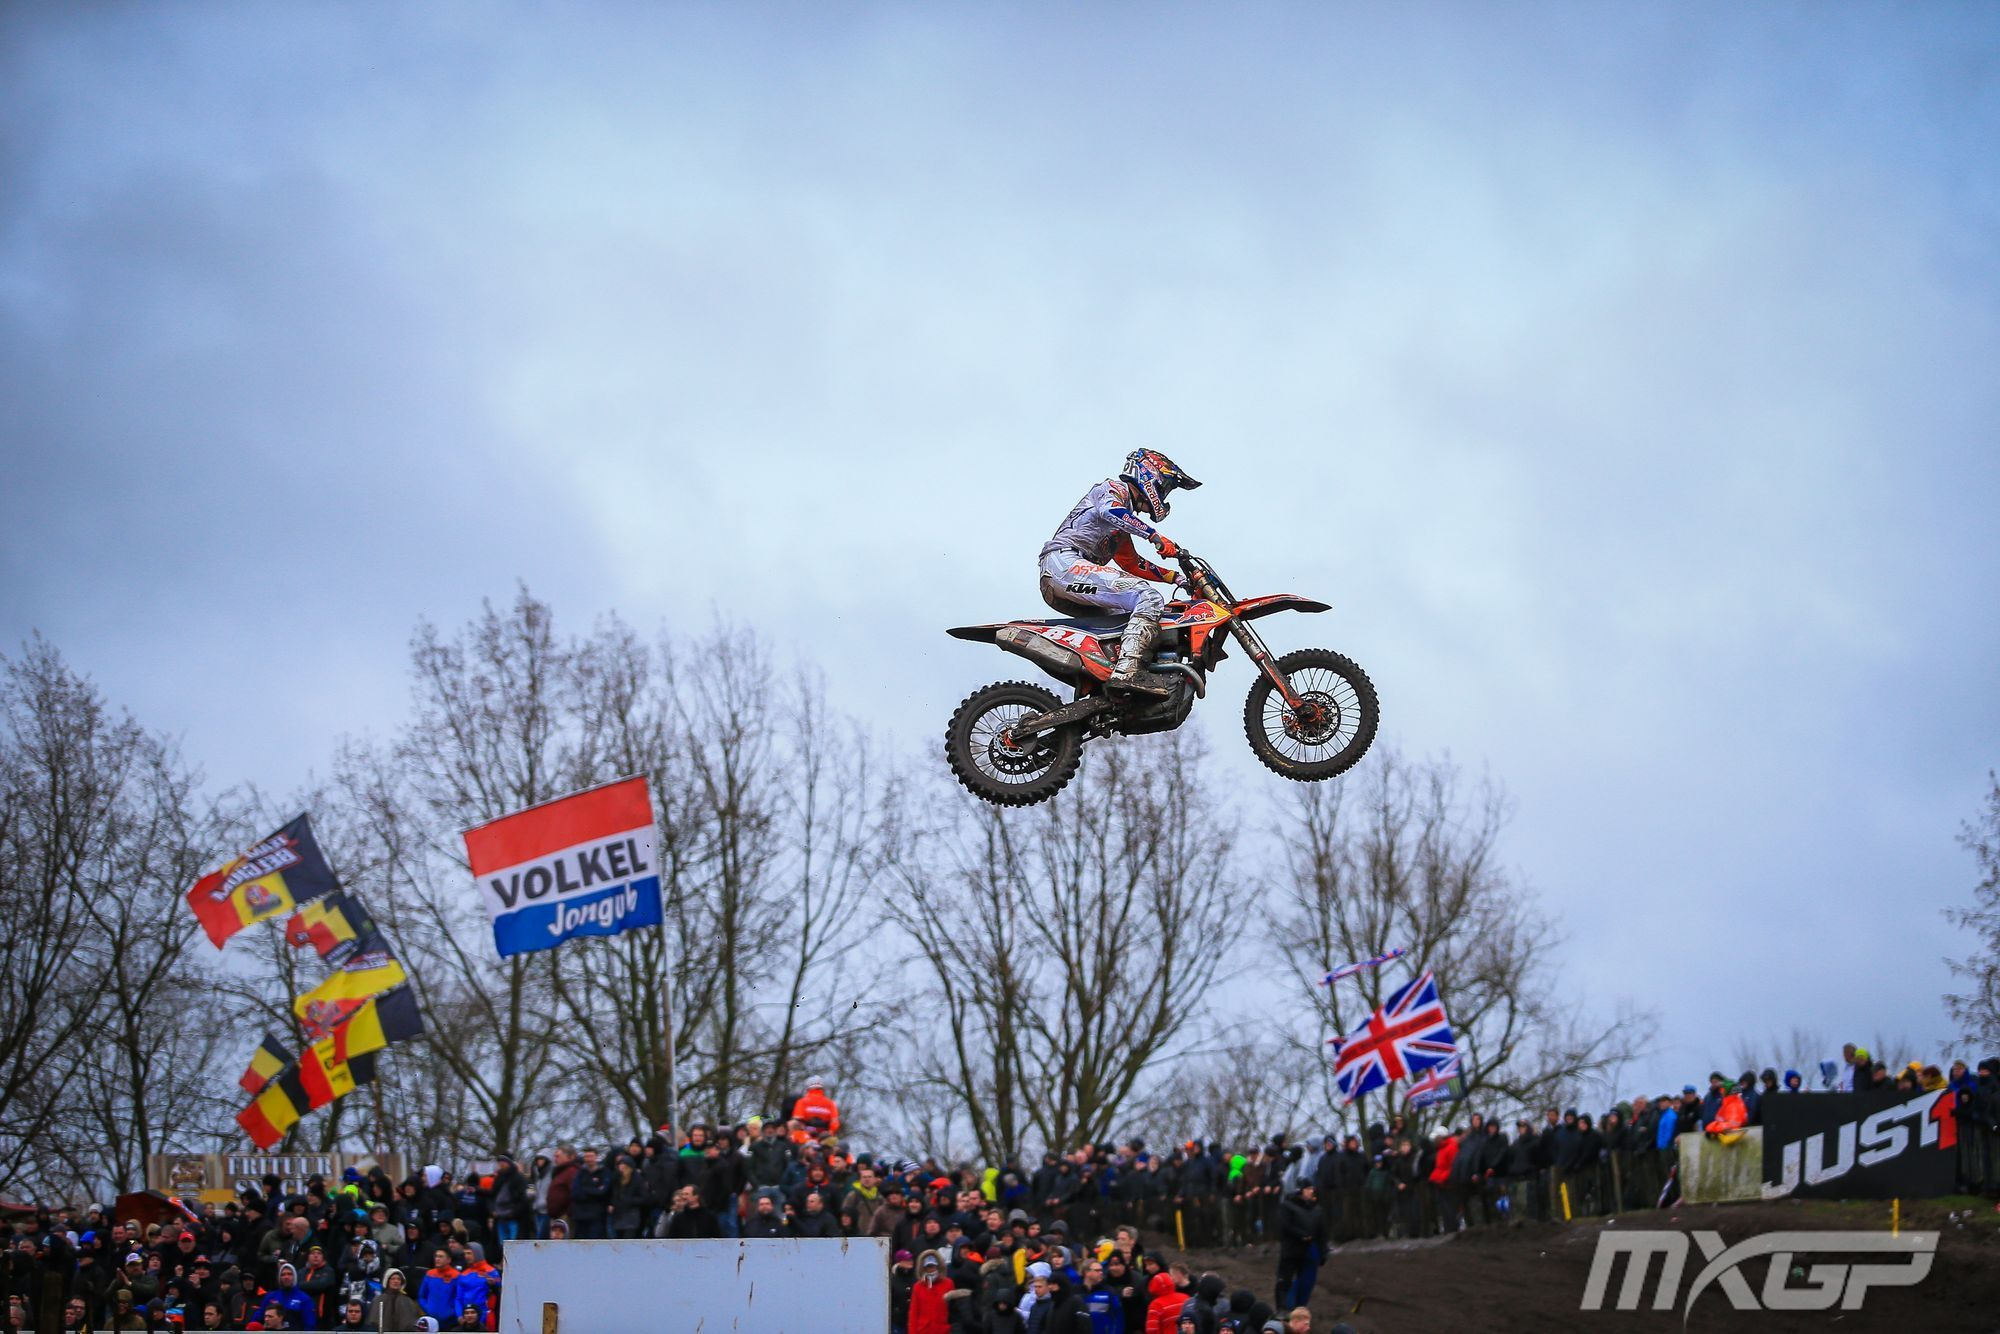 HERLINGS-XII-MOTOCROSS-GP-2-NL-2020.jpg#asset:27512